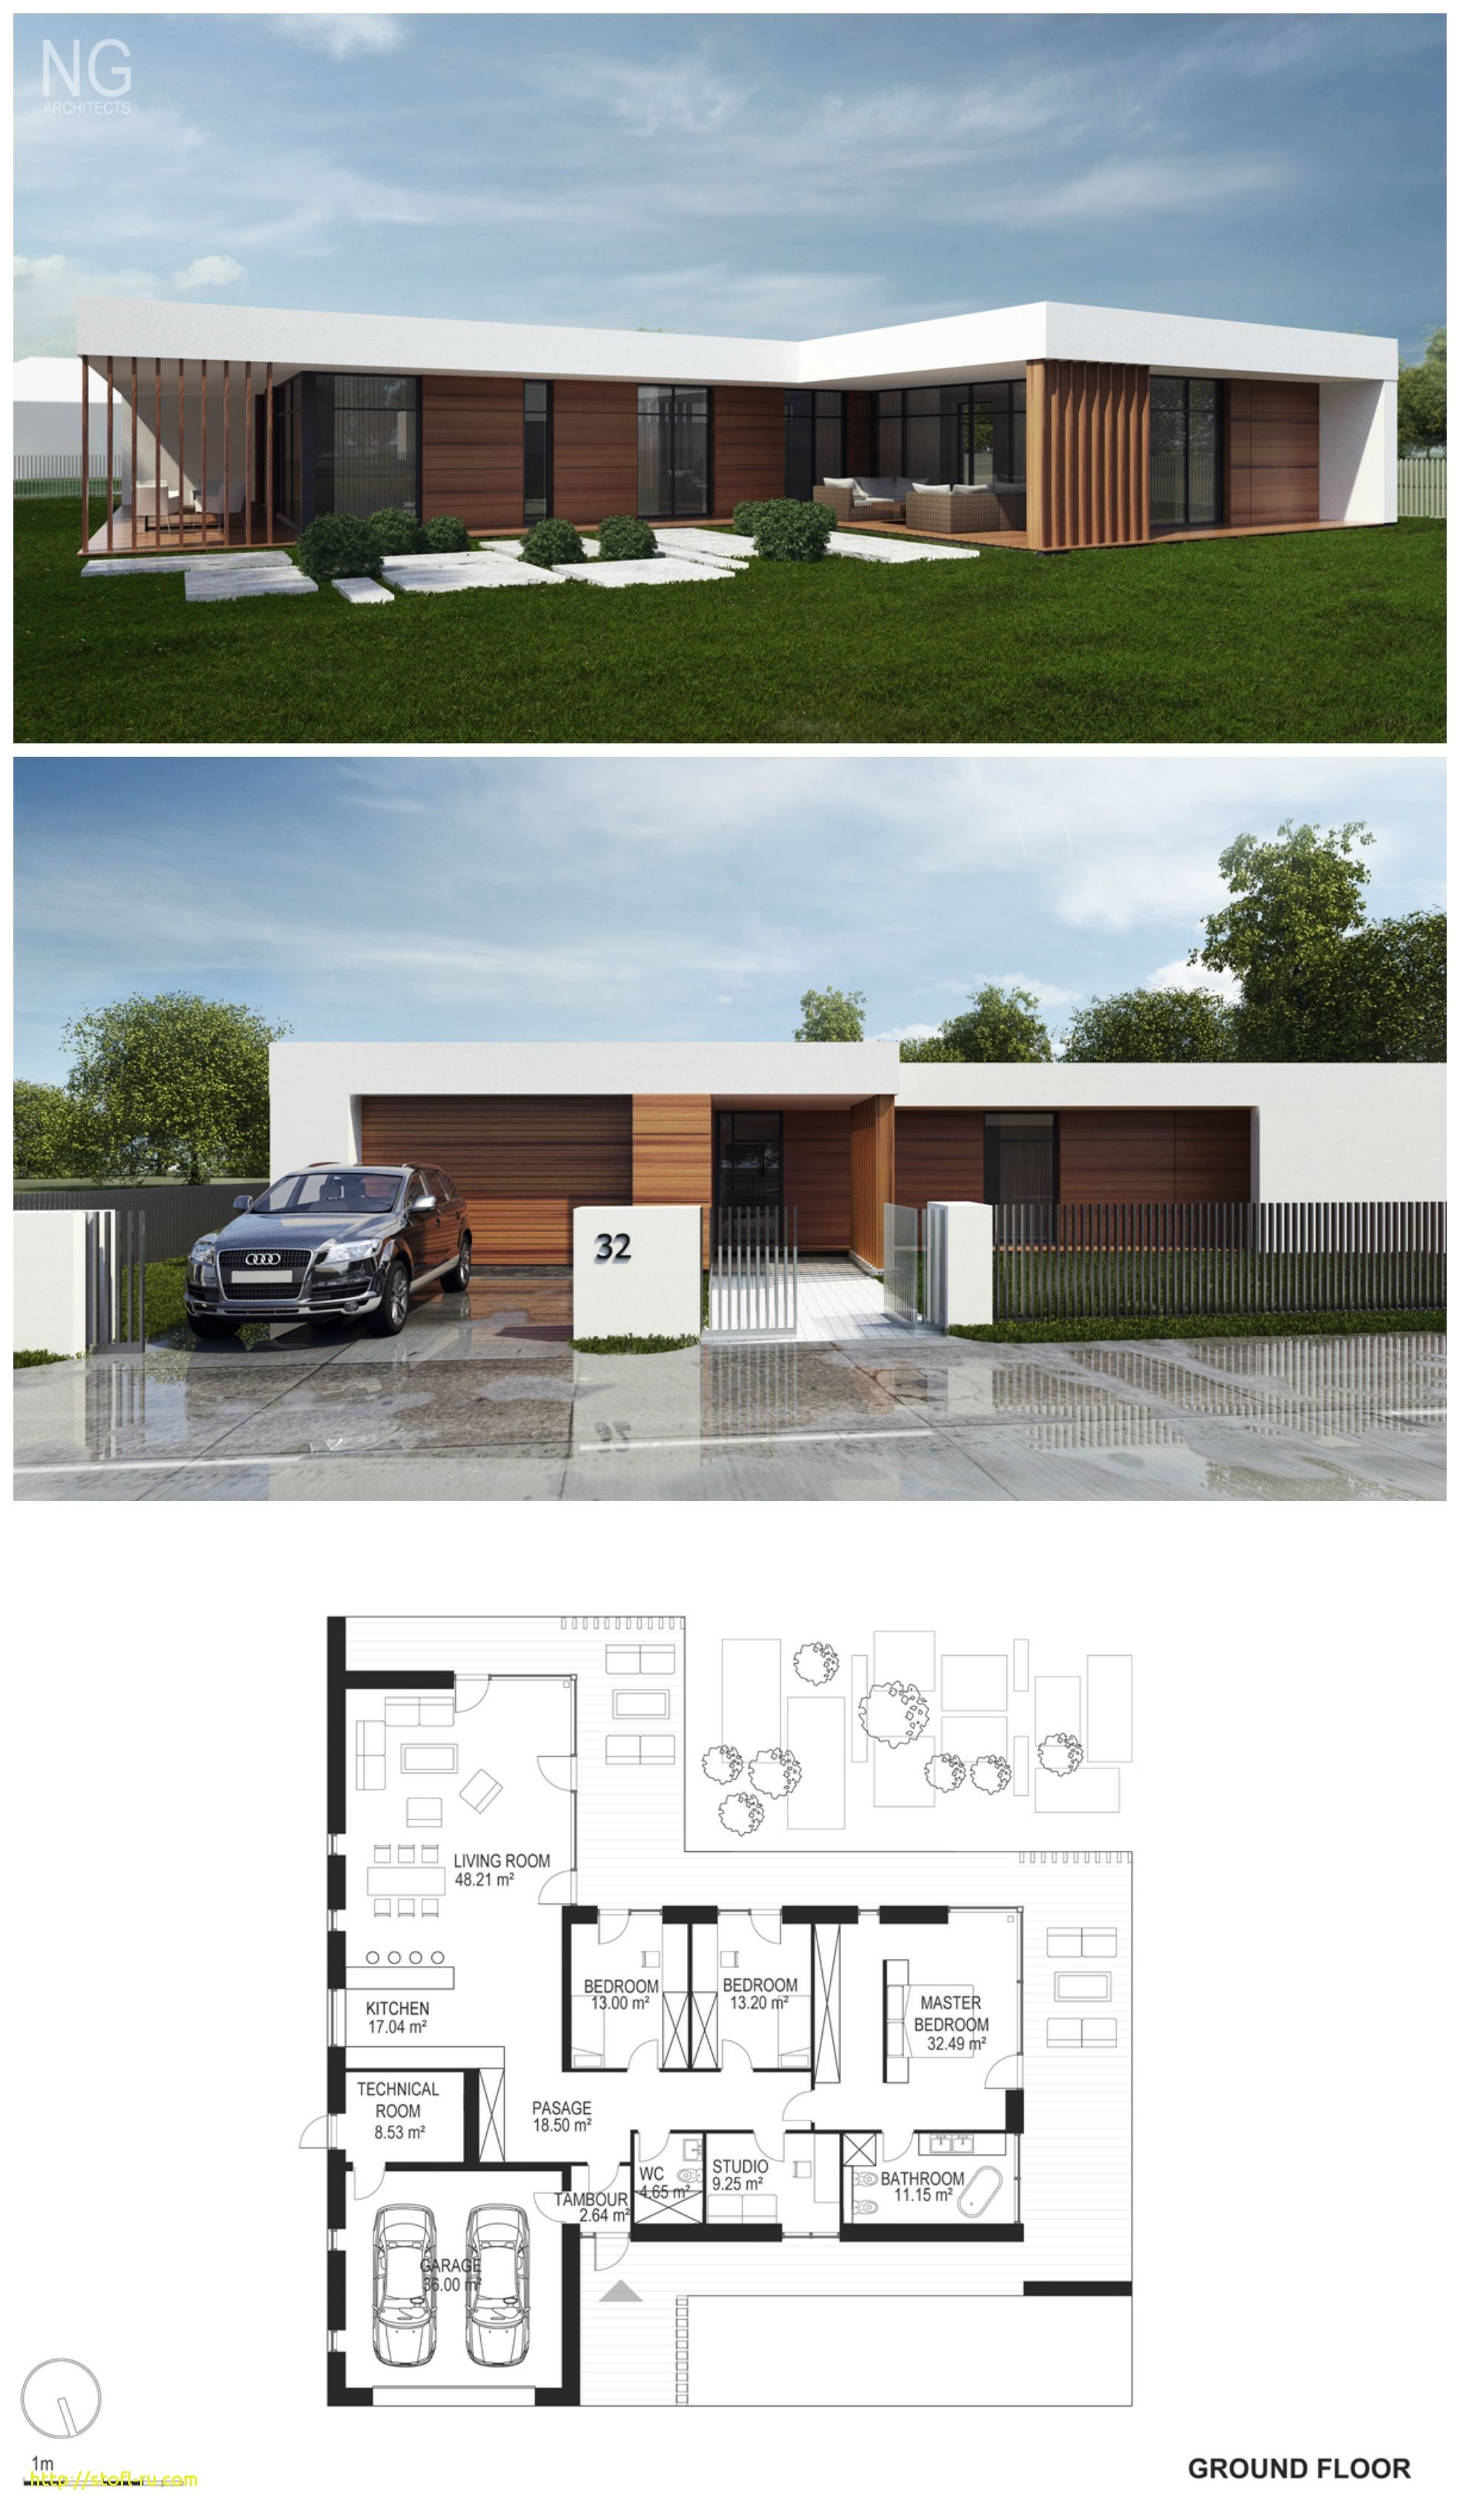 Modern House Plans Glass Walls Modern Style House Design Ideas Glasshousedesignplans Glasshouse Bungalow House Plans Bungalow Design Modern Bungalow House